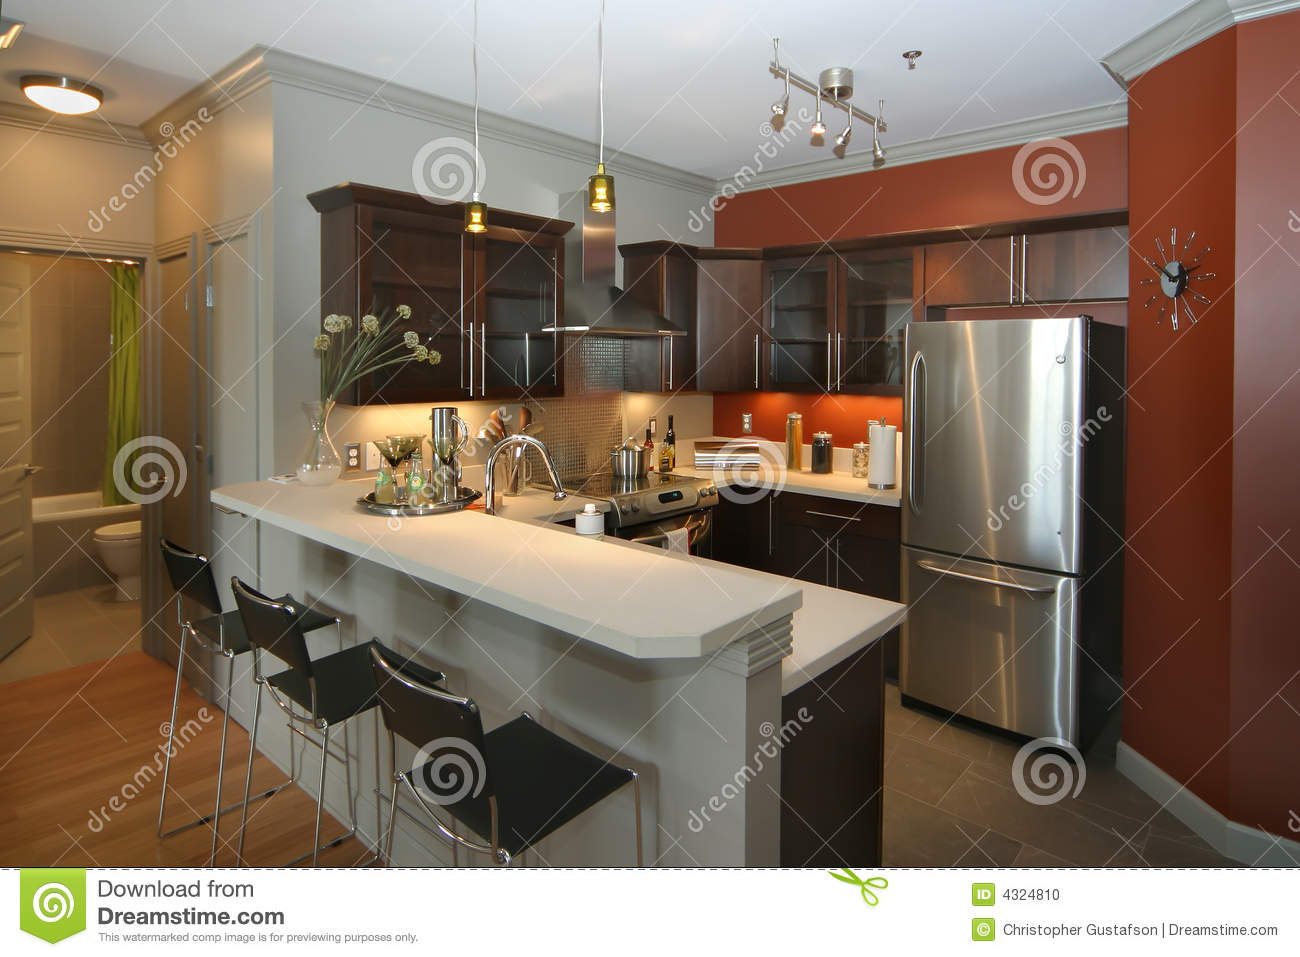 Modern Kitchen With Bar Modern Kitchen With Bar Area Stock Photo  Image 4324810